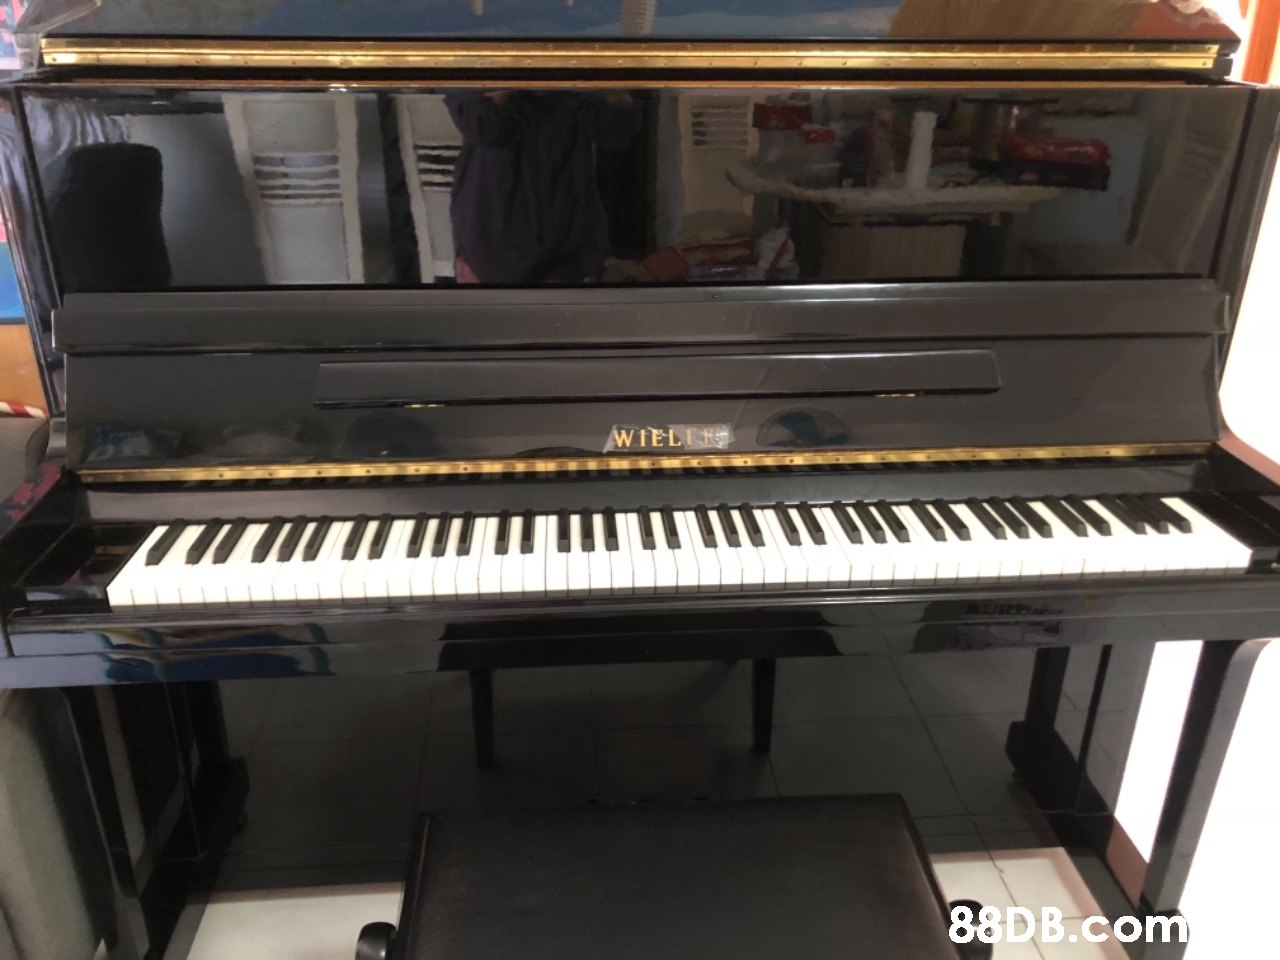 m  Piano,Musical instrument,Keyboard,Electronic instrument,Musical keyboard